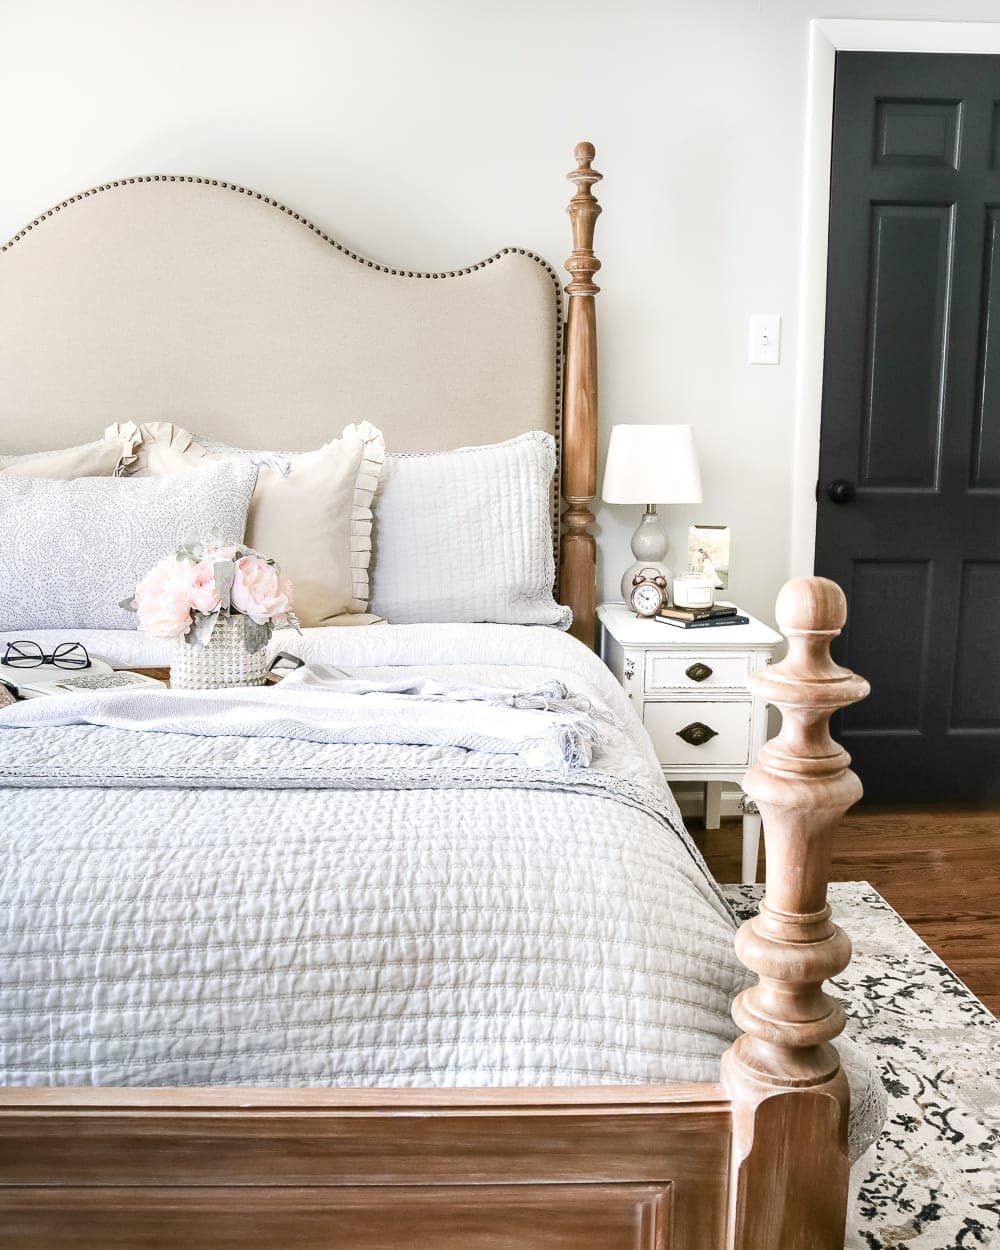 Simply Summer Bedroom Tour | blesserhouse.com - A drab bedroom gets a sophisticated makeover using clearance items and thrift finds for a masculine / feminine balance styled for summer.